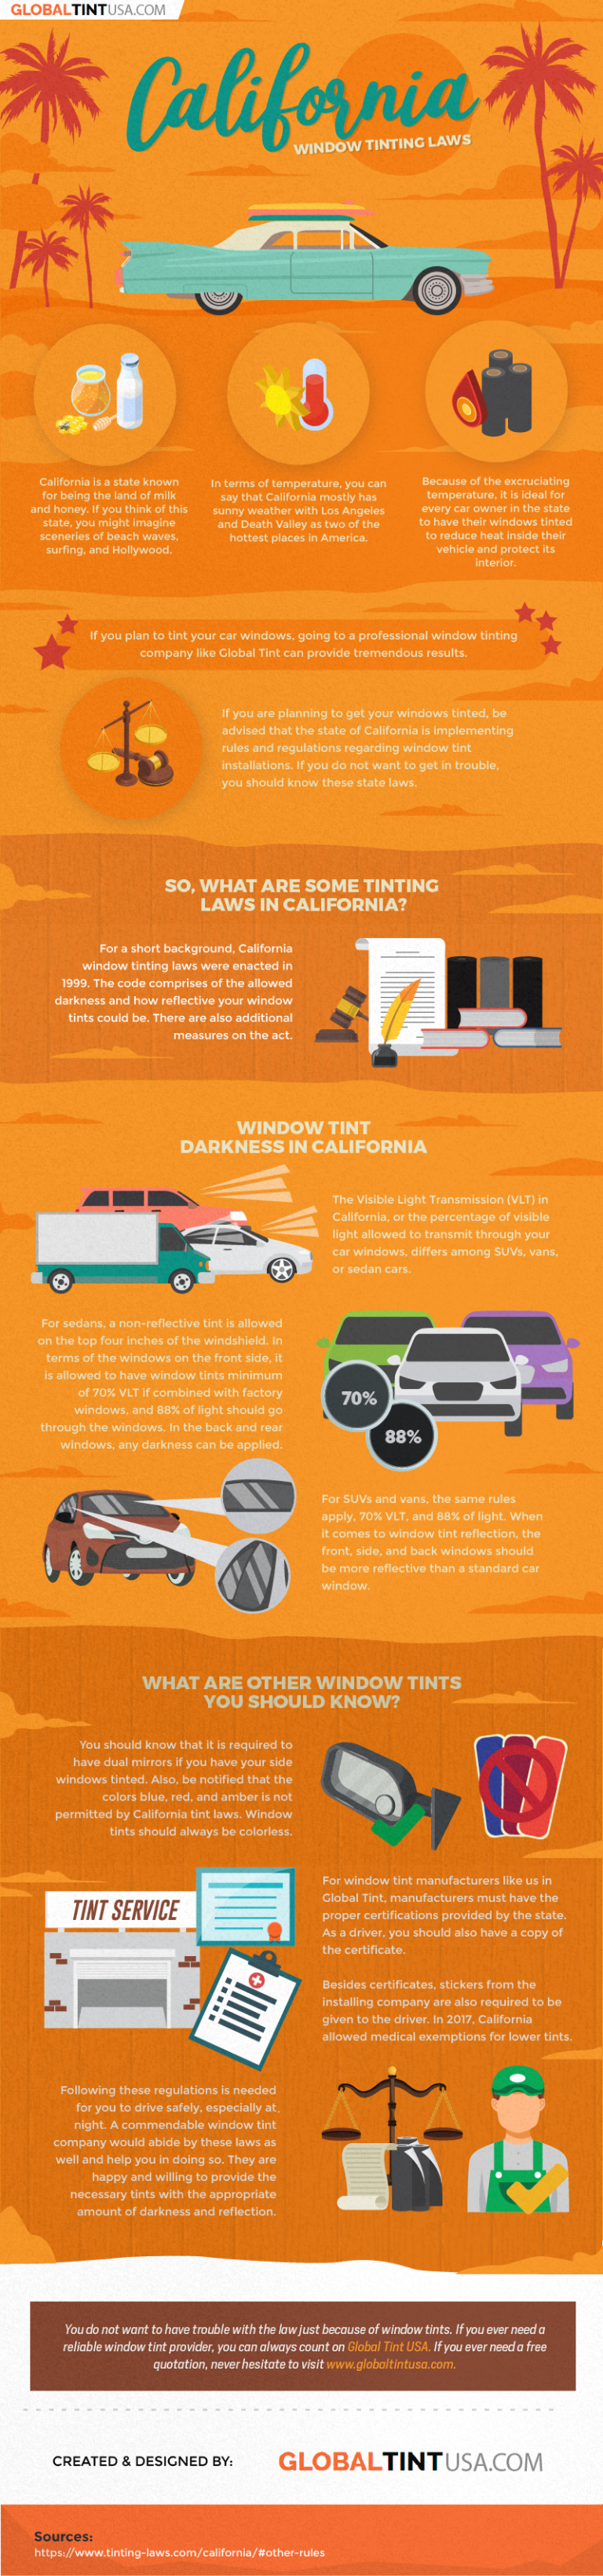 California Window Tinting Laws - Infographic